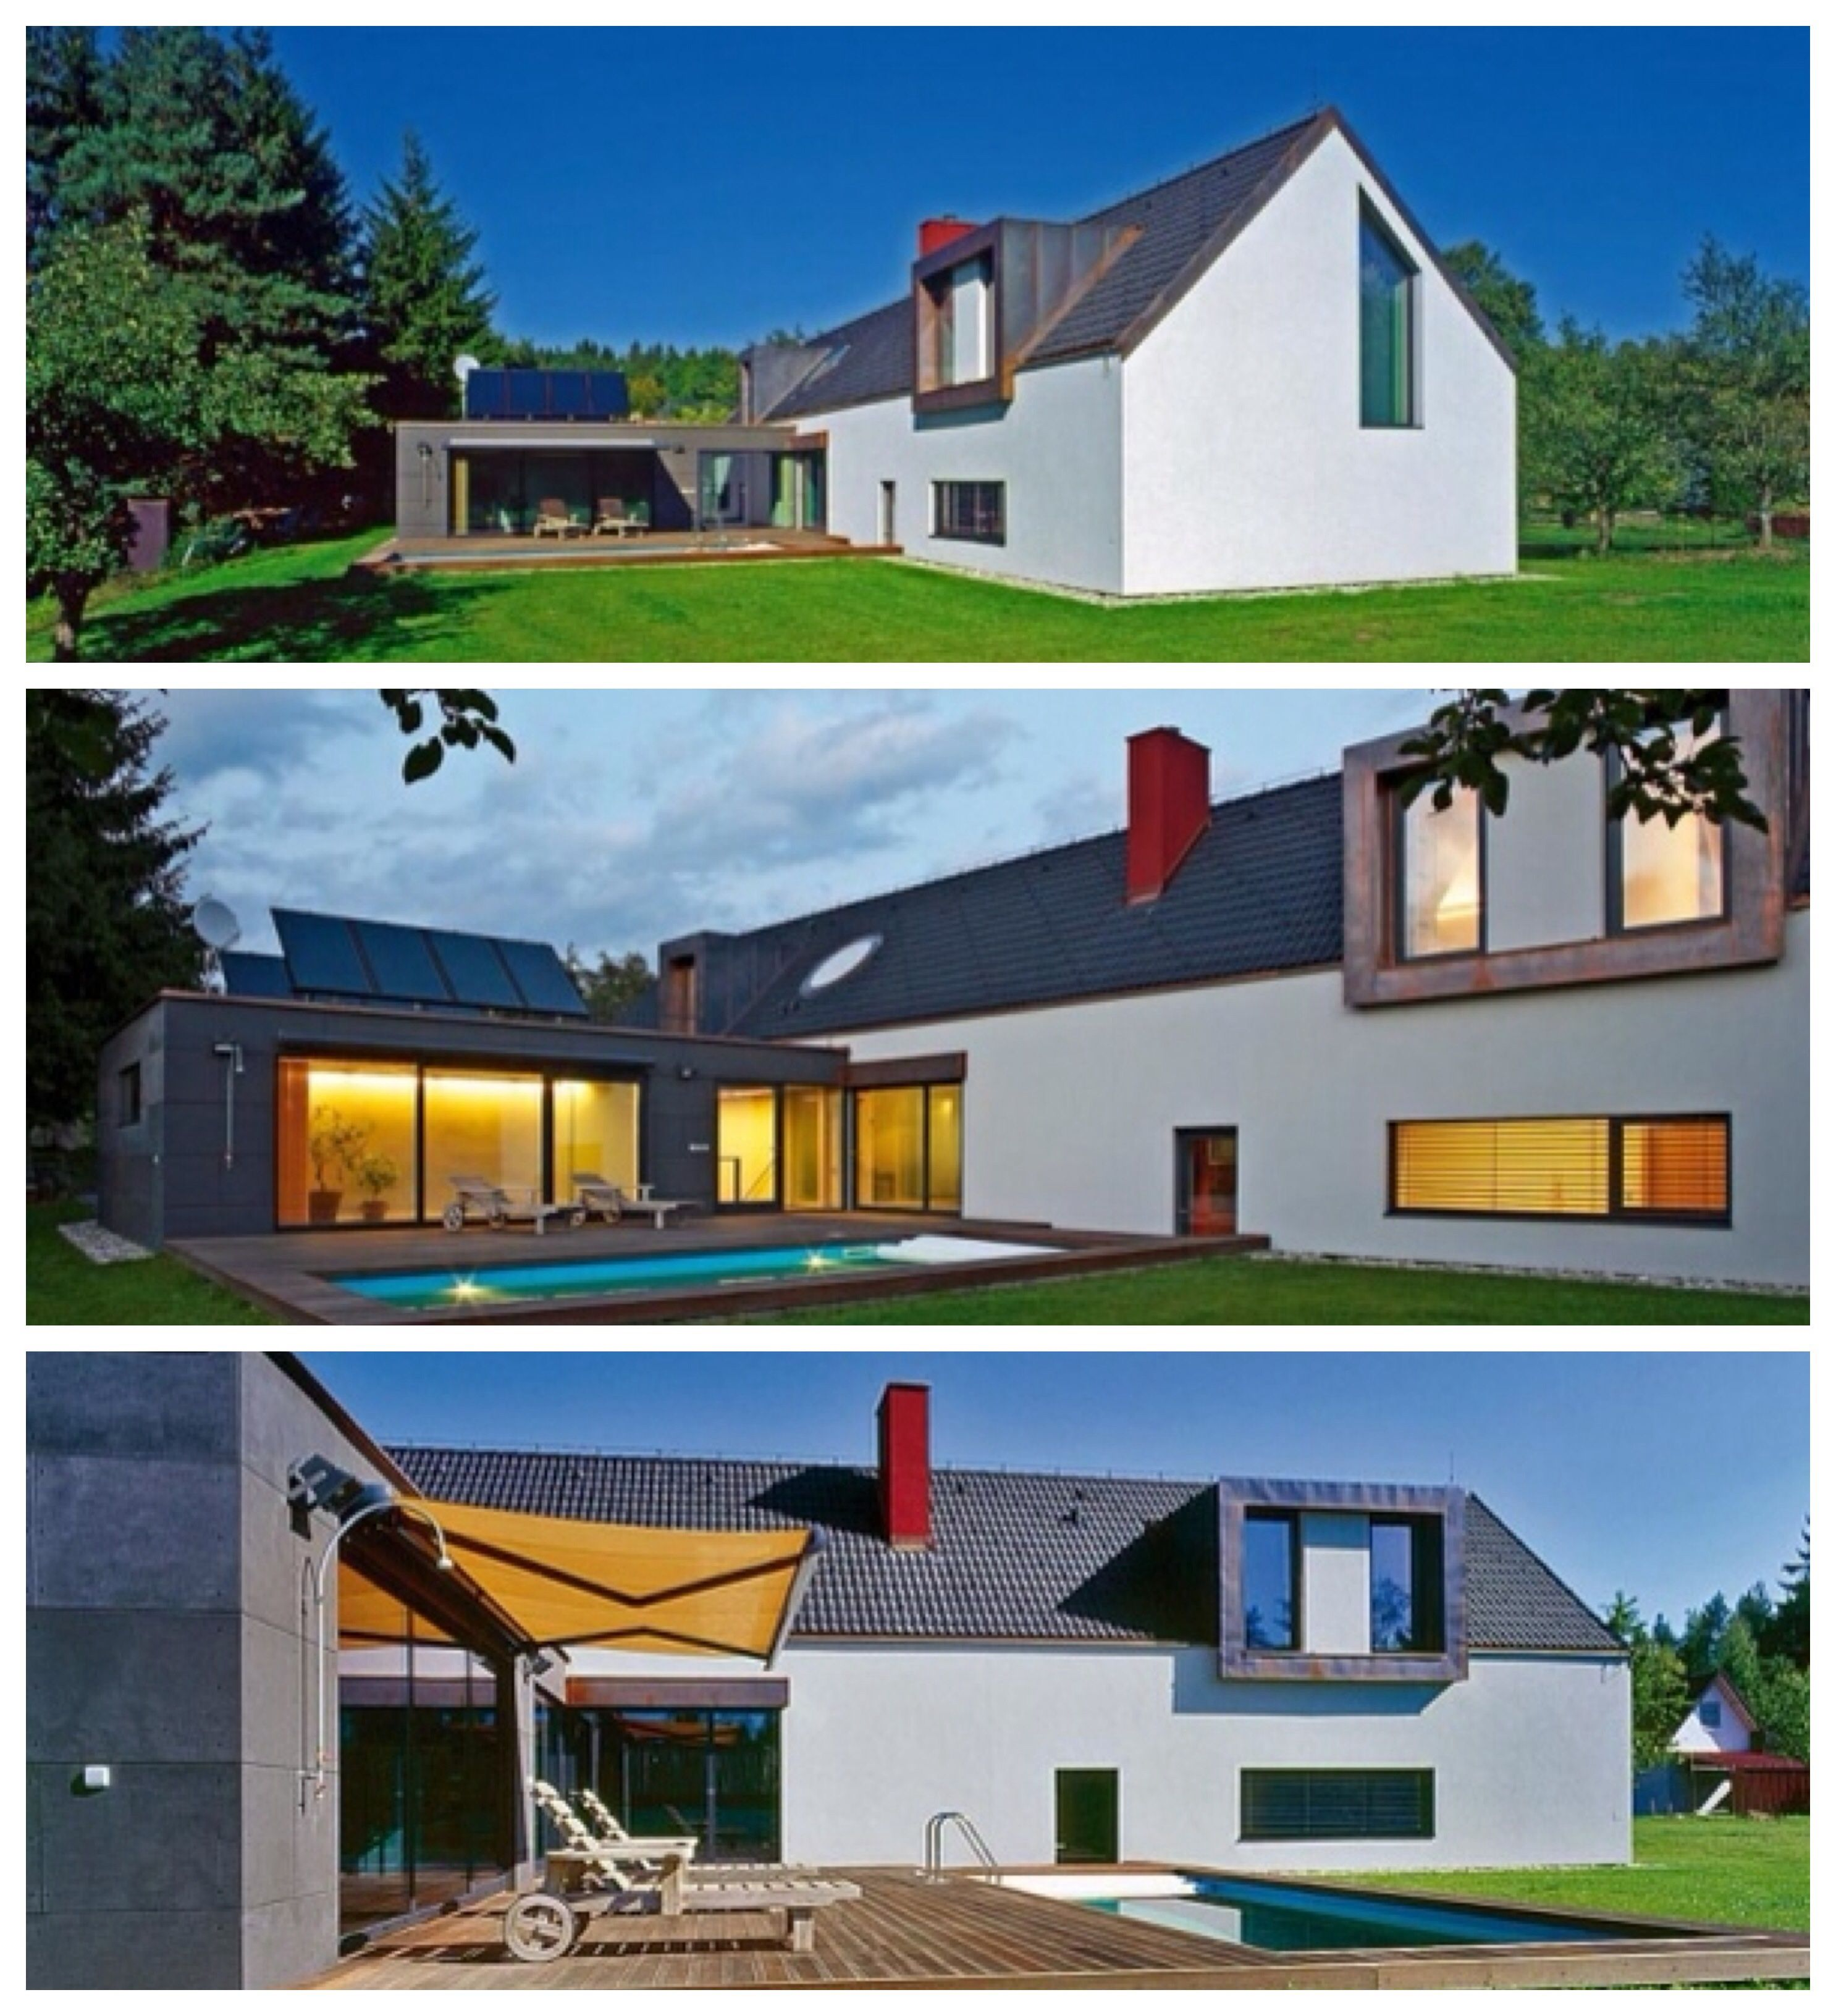 Combined: flat & gable roof; L-shaped building | Gable roof ... on